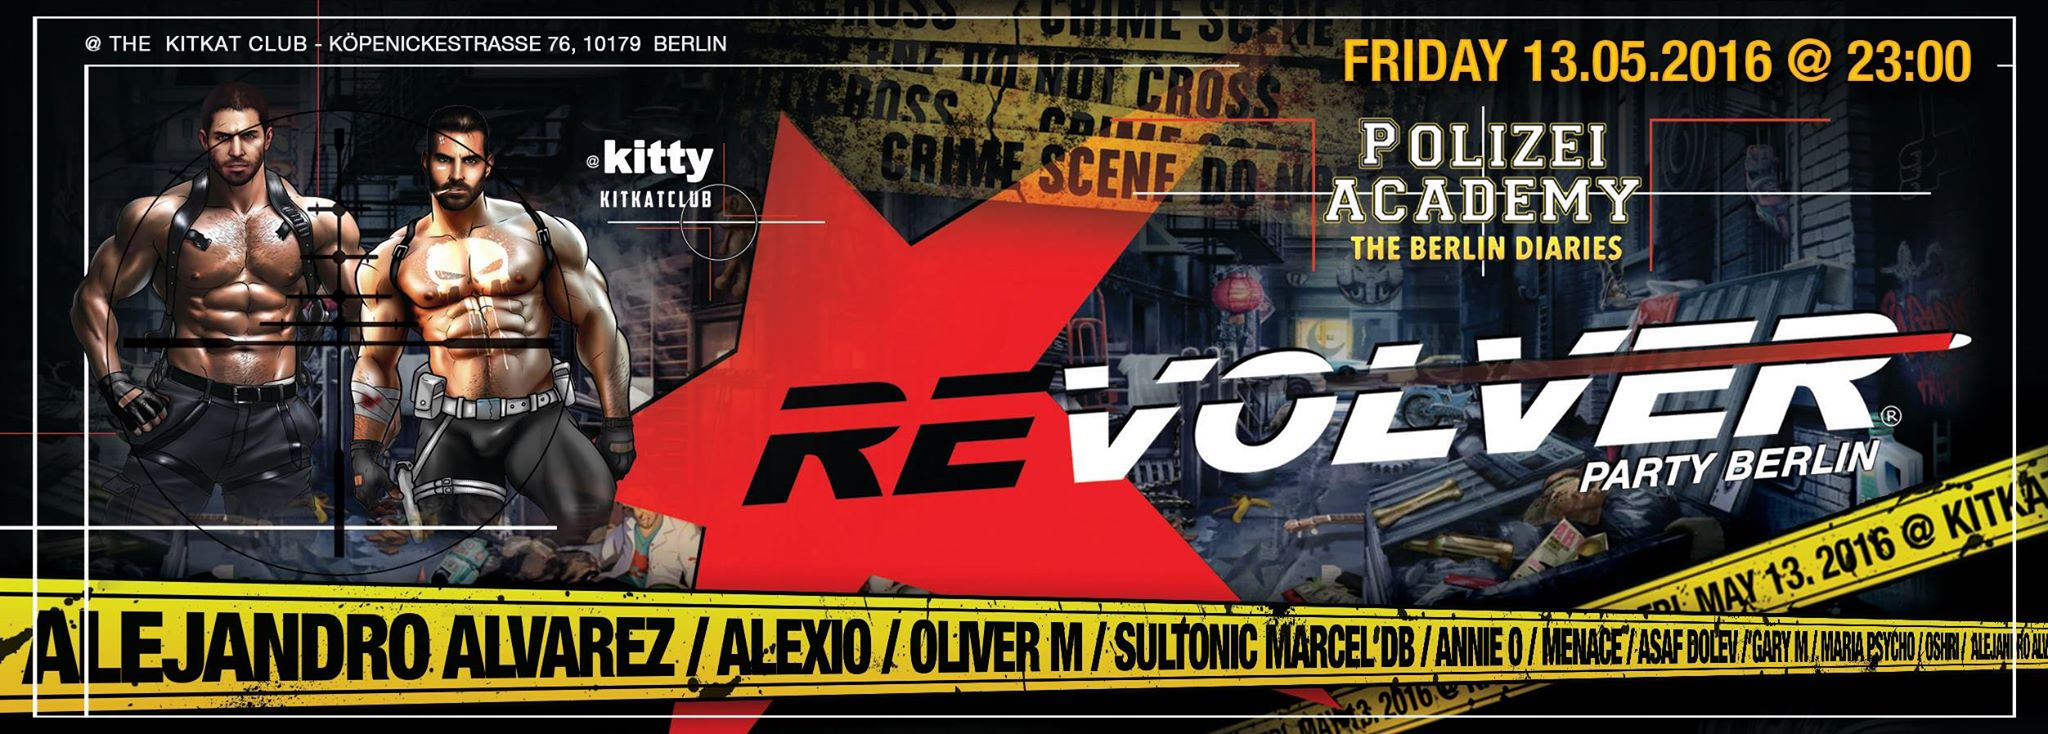 Revolver Party mit Marcel db im KitKat Club Berlin